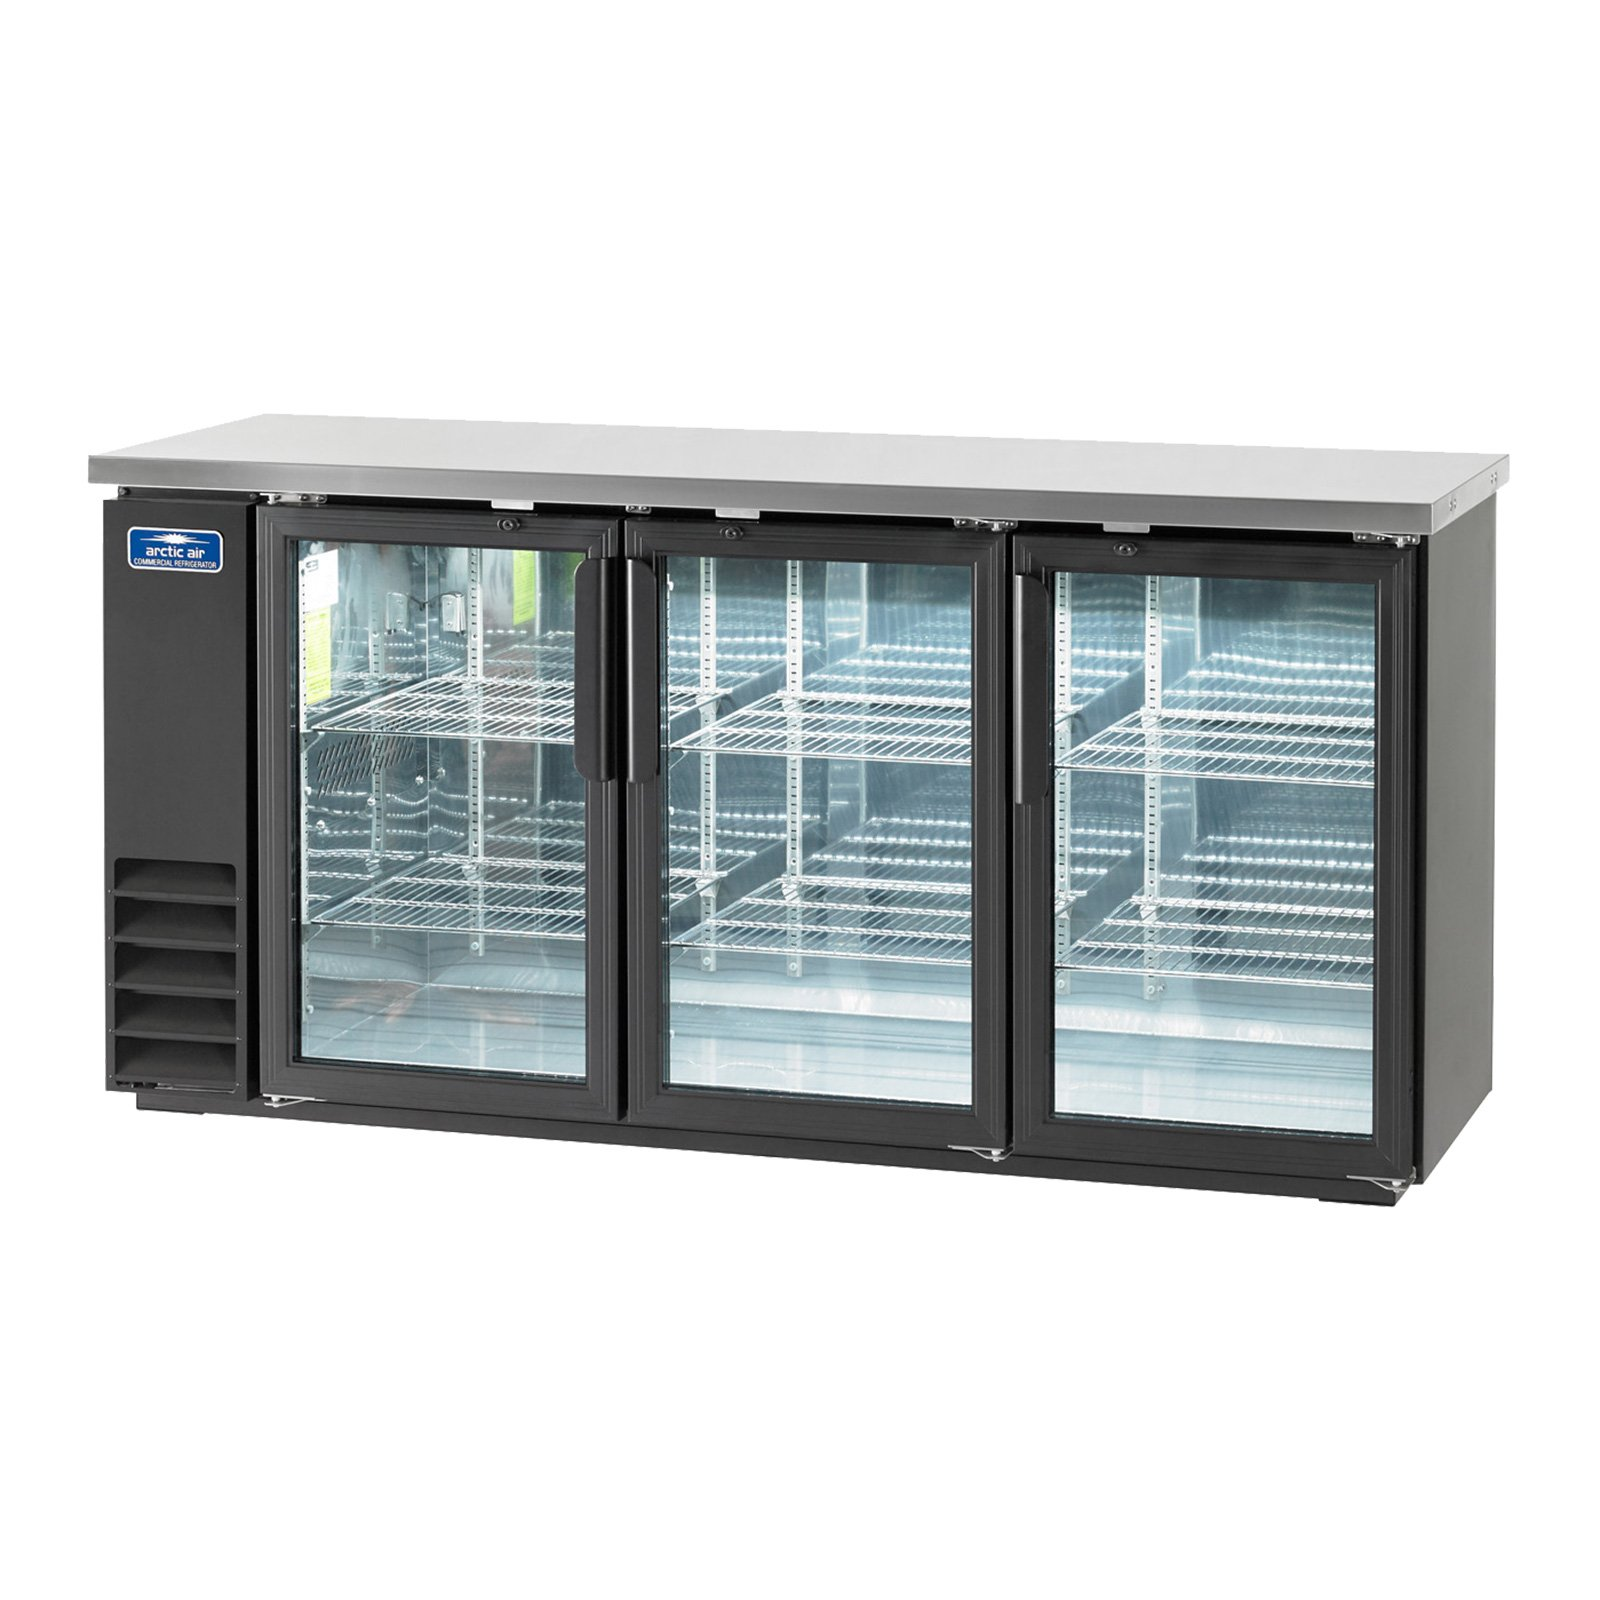 Arctic Air ABB72G, Back Bar Refrigerator, Glass Doors, three-section, Interior LED Lighting, NSF Certified